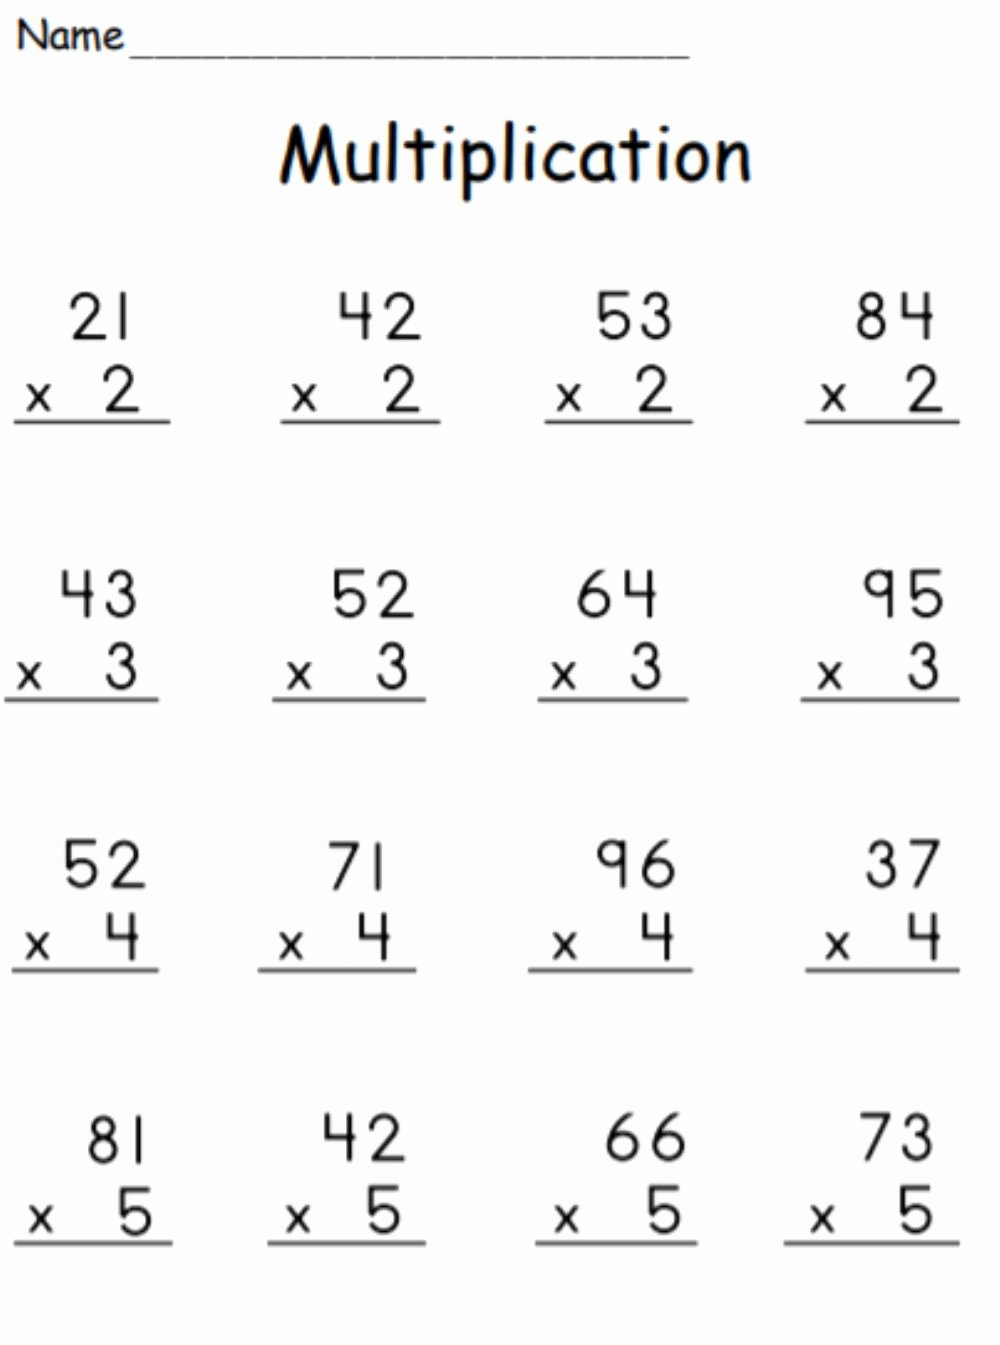 2 by 1 Digit Multiplication Worksheets top Multiplication 2 Digit by 1 Digit with Regrouping